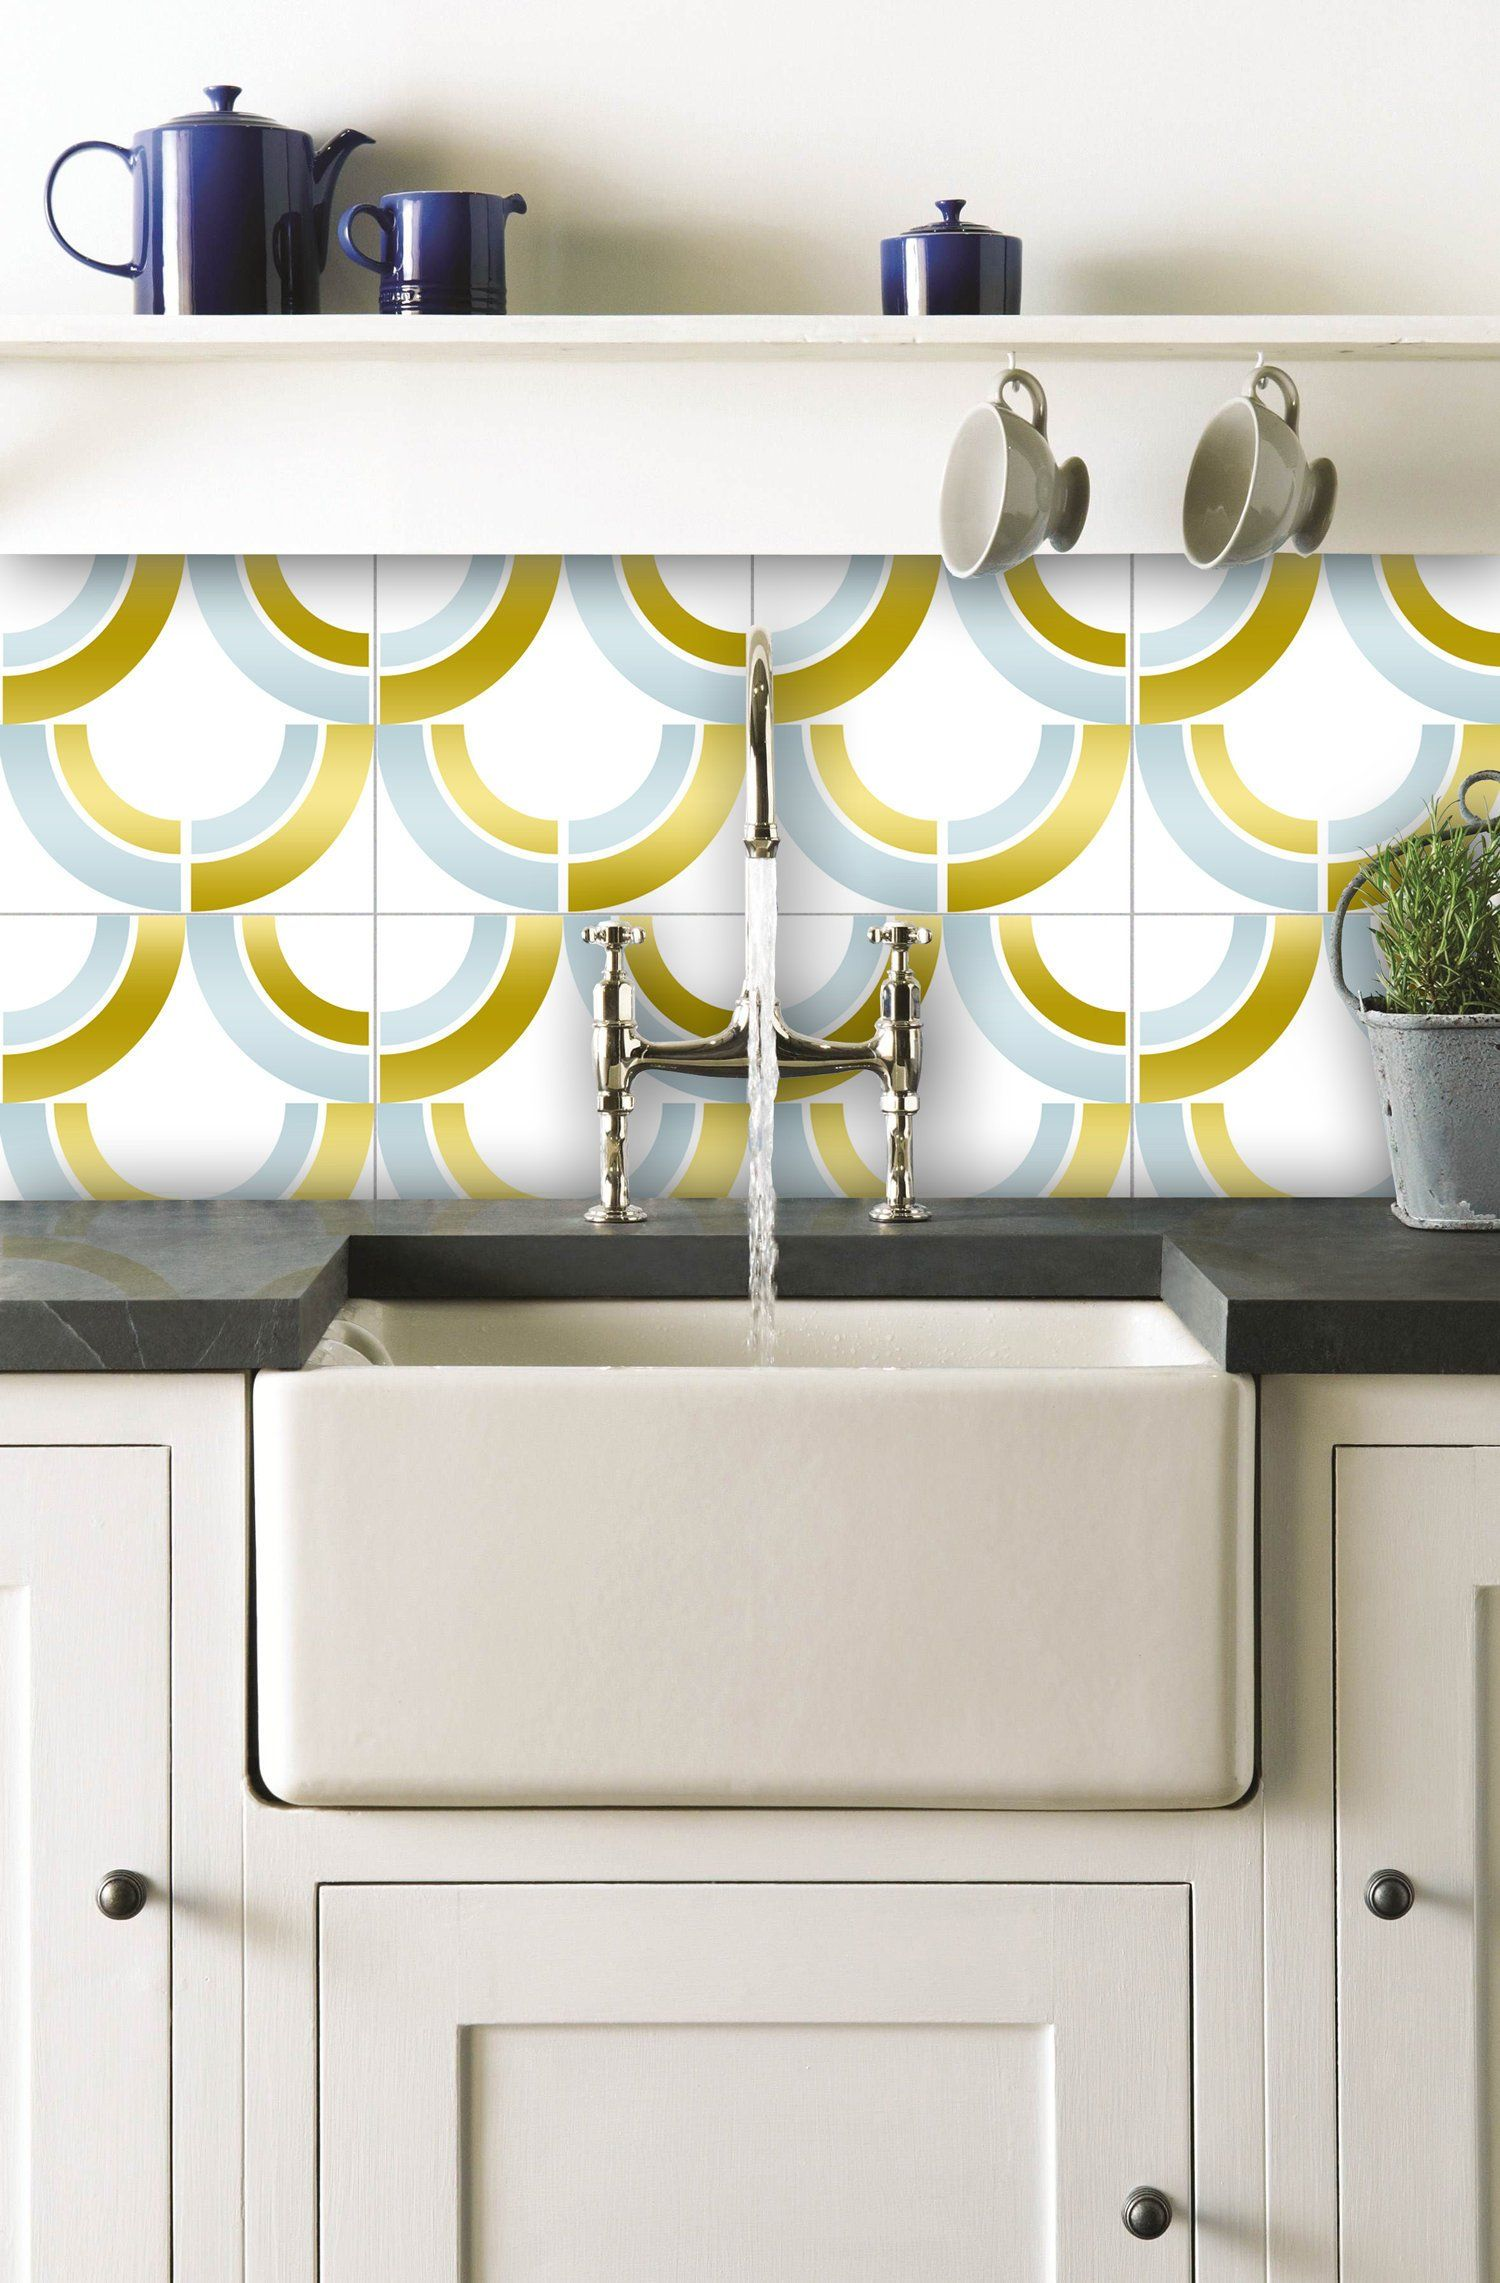 Faux Brass And Marble Tile Stickers Tile Decals For Kitchen Bathroom Wall Or Backsplash Waterproof And Re Diy Kitchen Backsplash Backsplash Beach Wall Decor